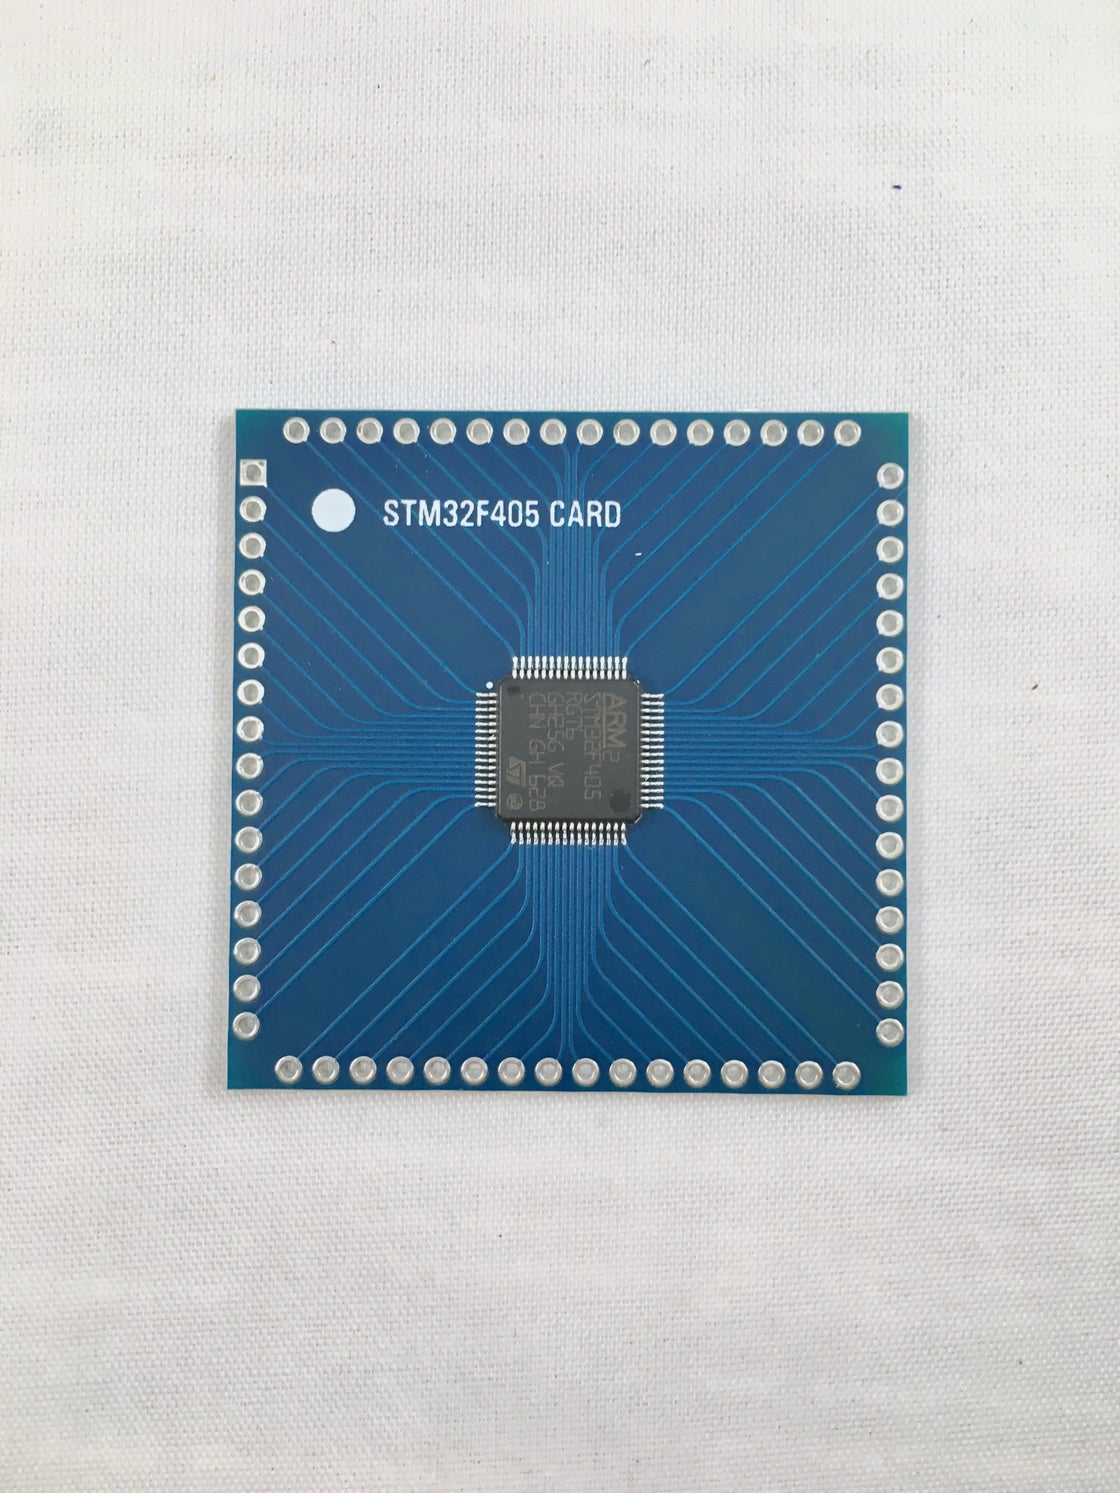 Image of Microcontroller card